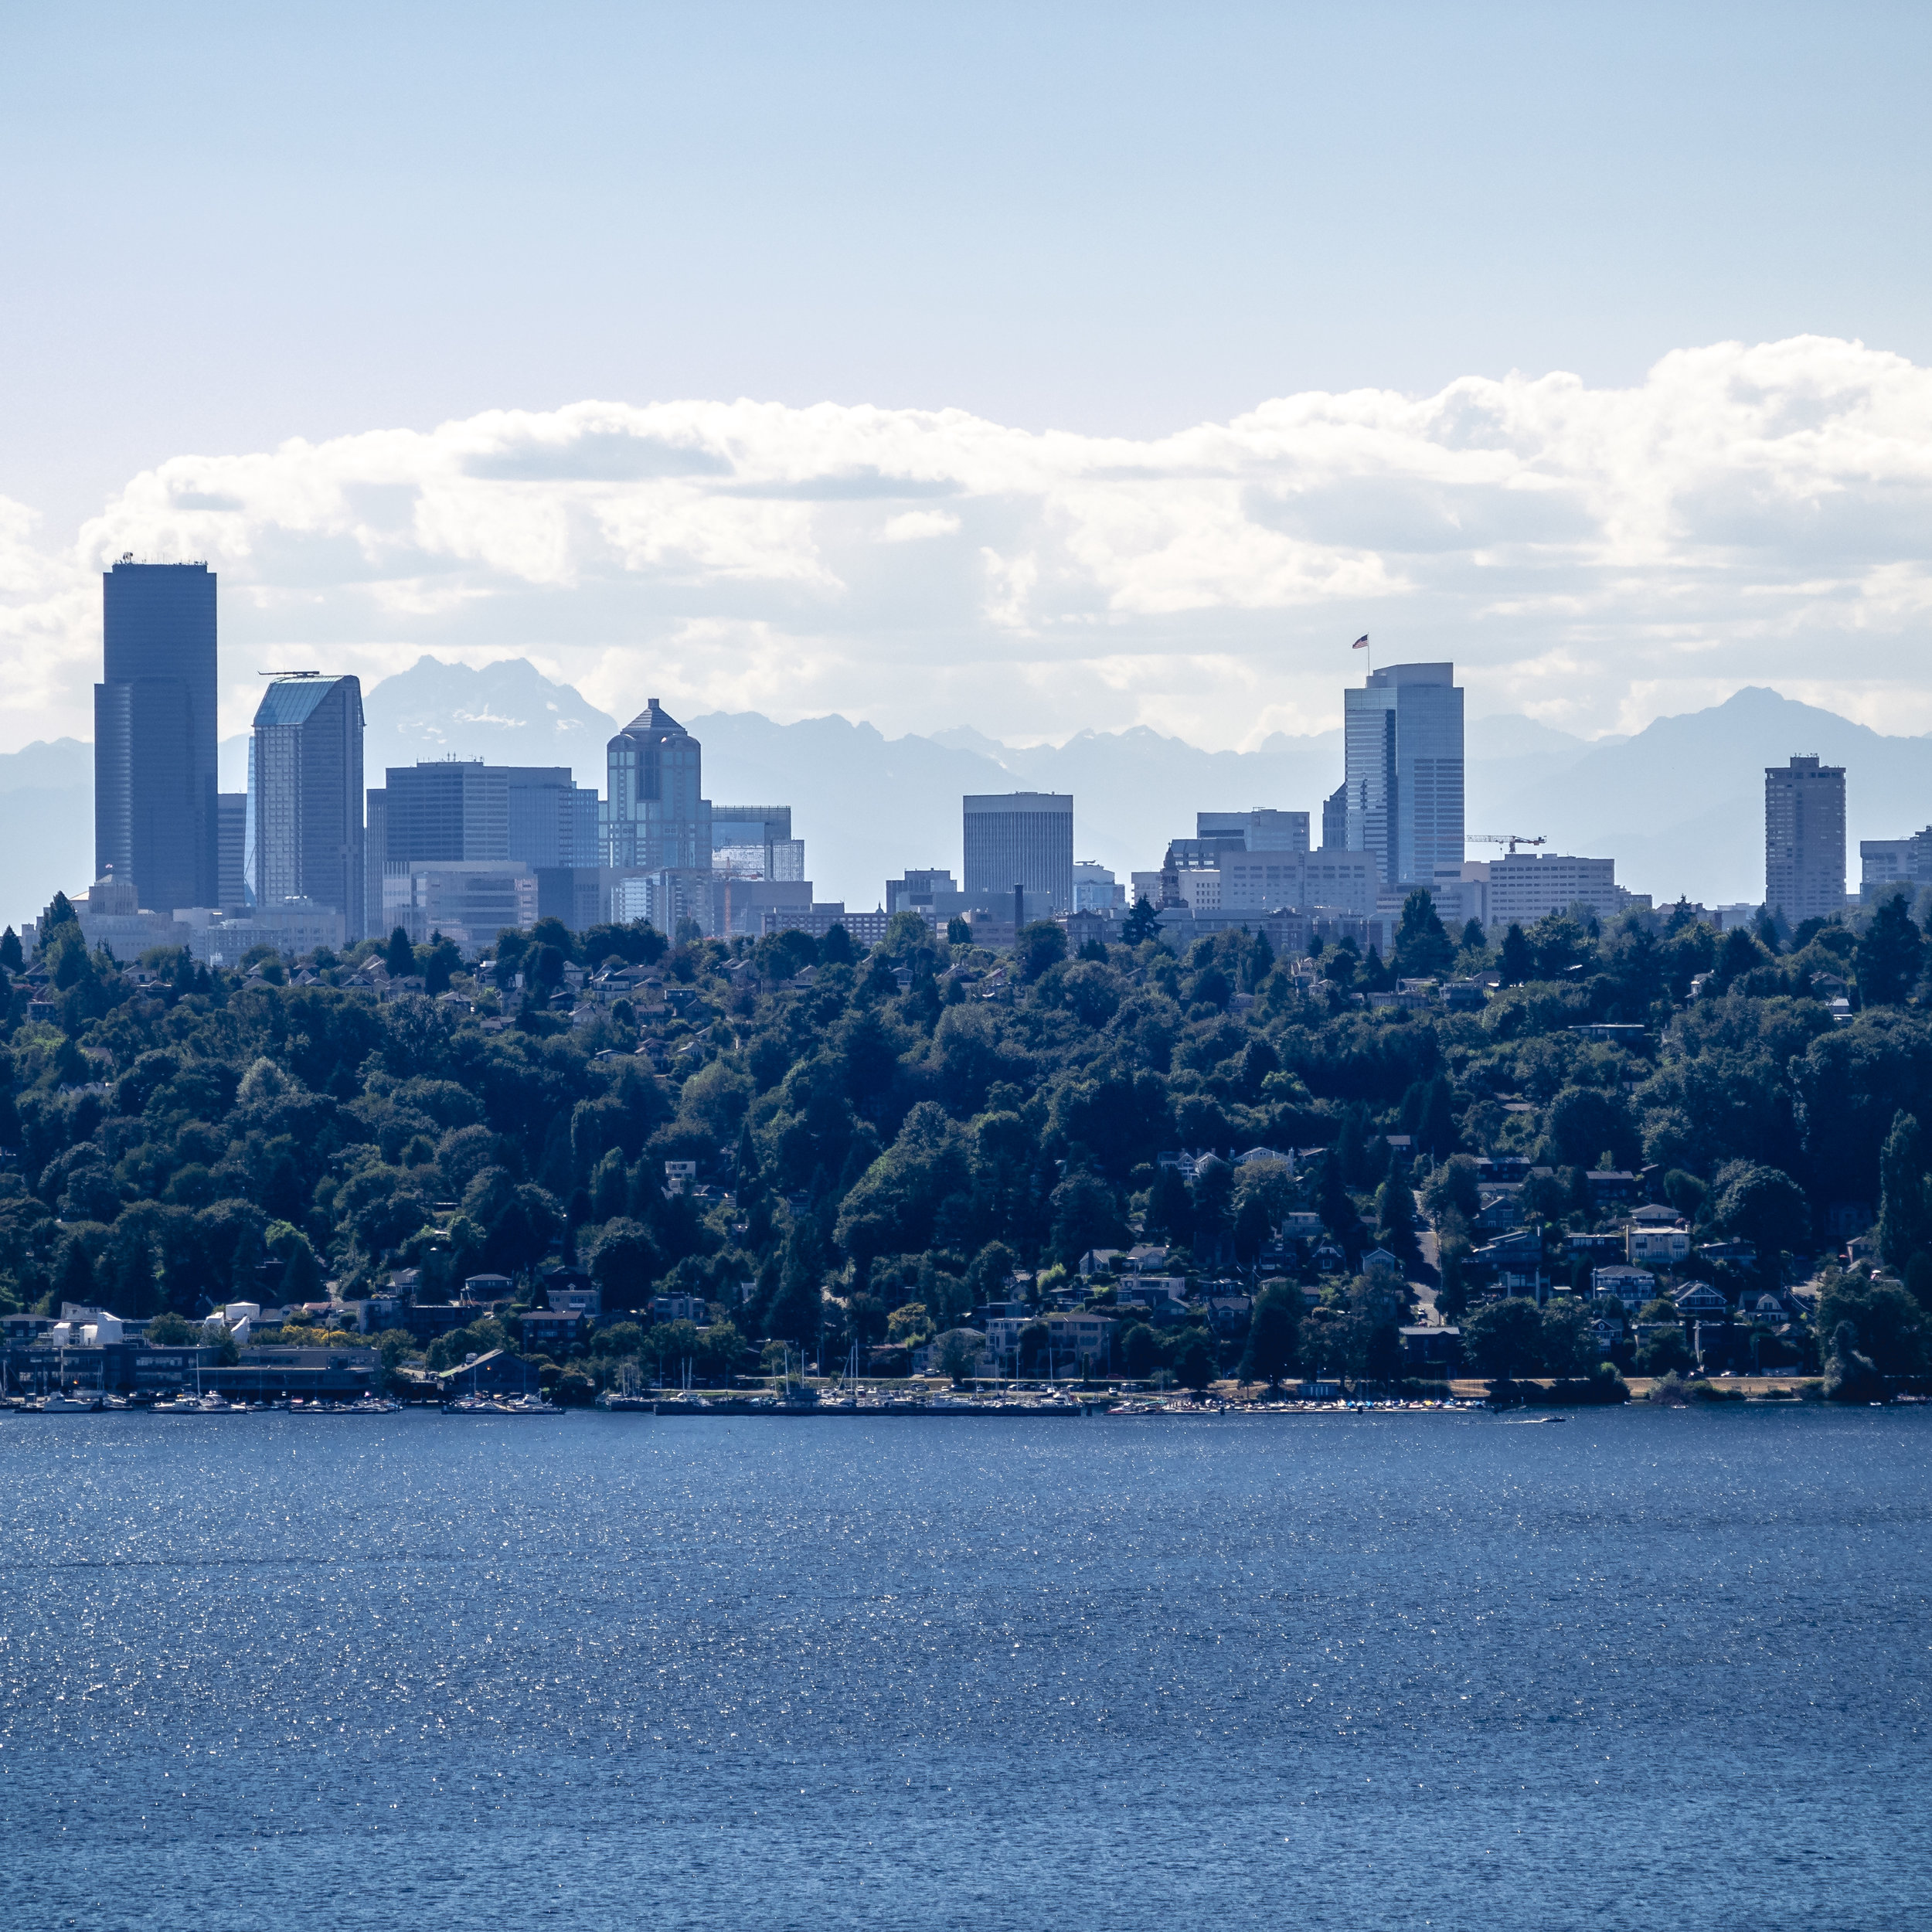 City_Skyline_Over_Lake_Washington_and_Seattle_Neighborhoods.jpg